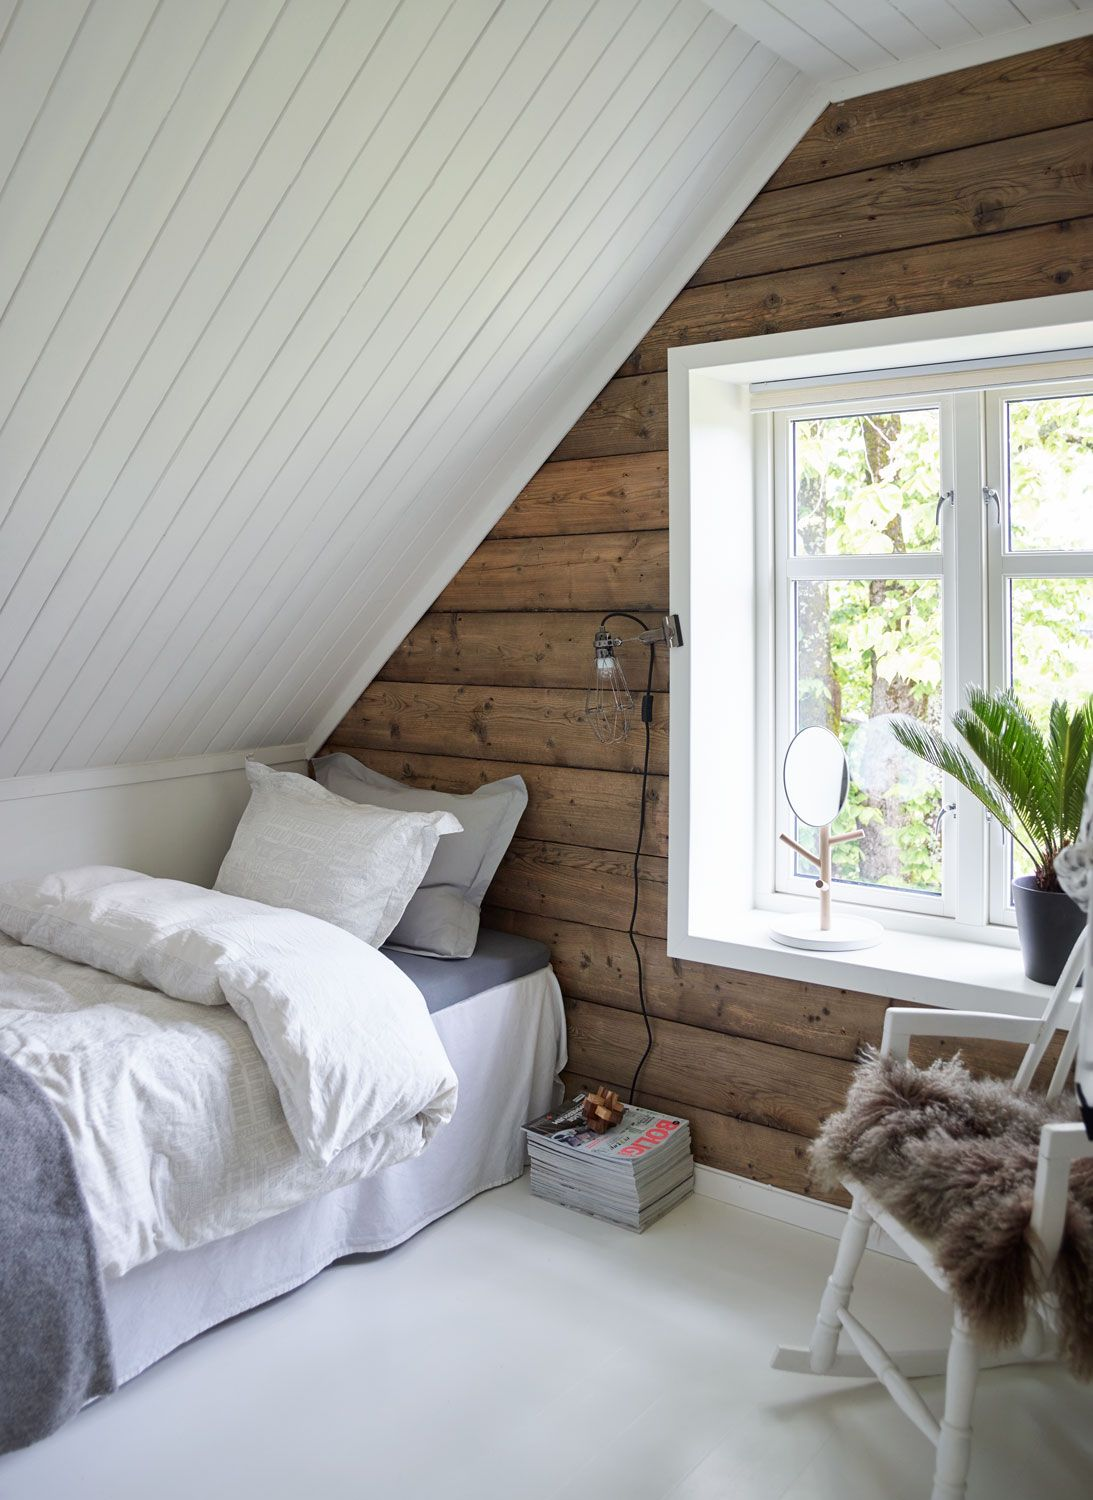 Attic bedroom design and d cor tips small attic bedrooms for Small single bedroom decorating ideas